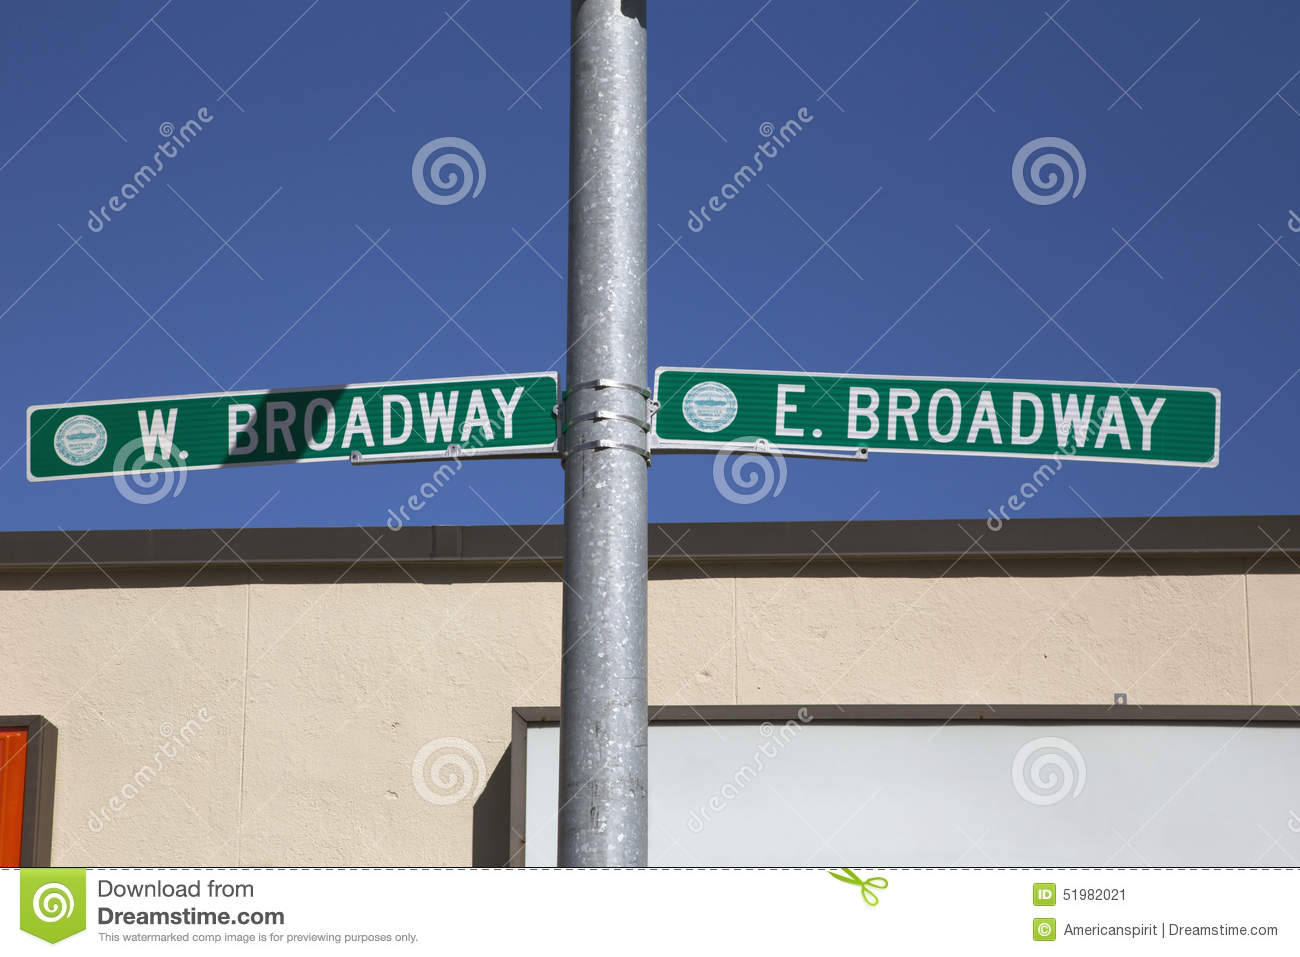 Road sign for East and West Broway, South Boston, Massachusetts, USA